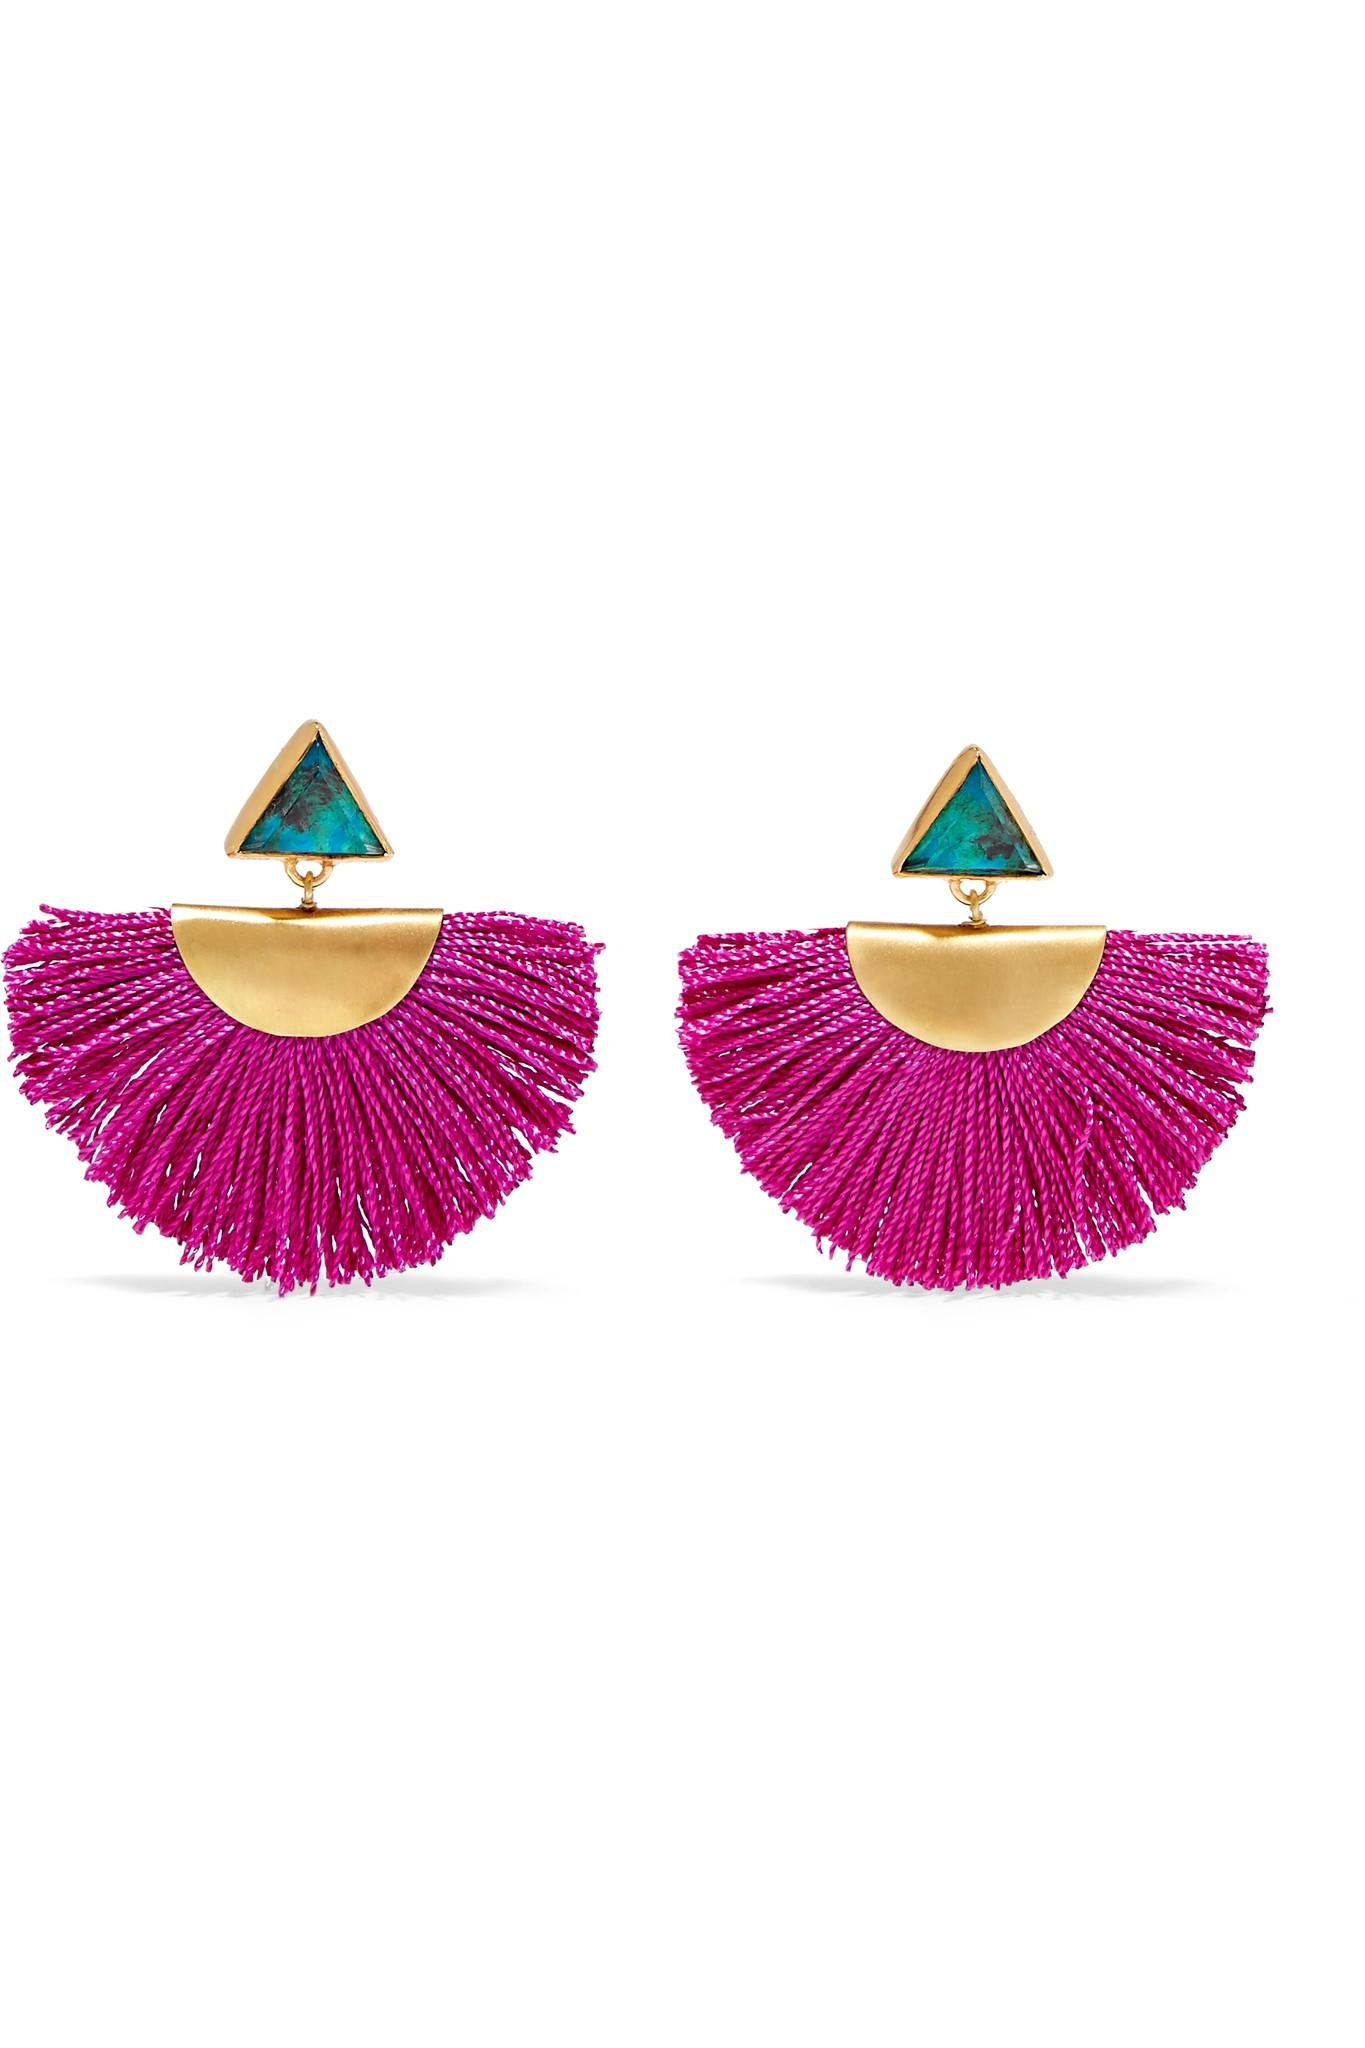 Katerina Makriyianni Fringed Gold-plated Feather Earrings - Pink PnIQrerB